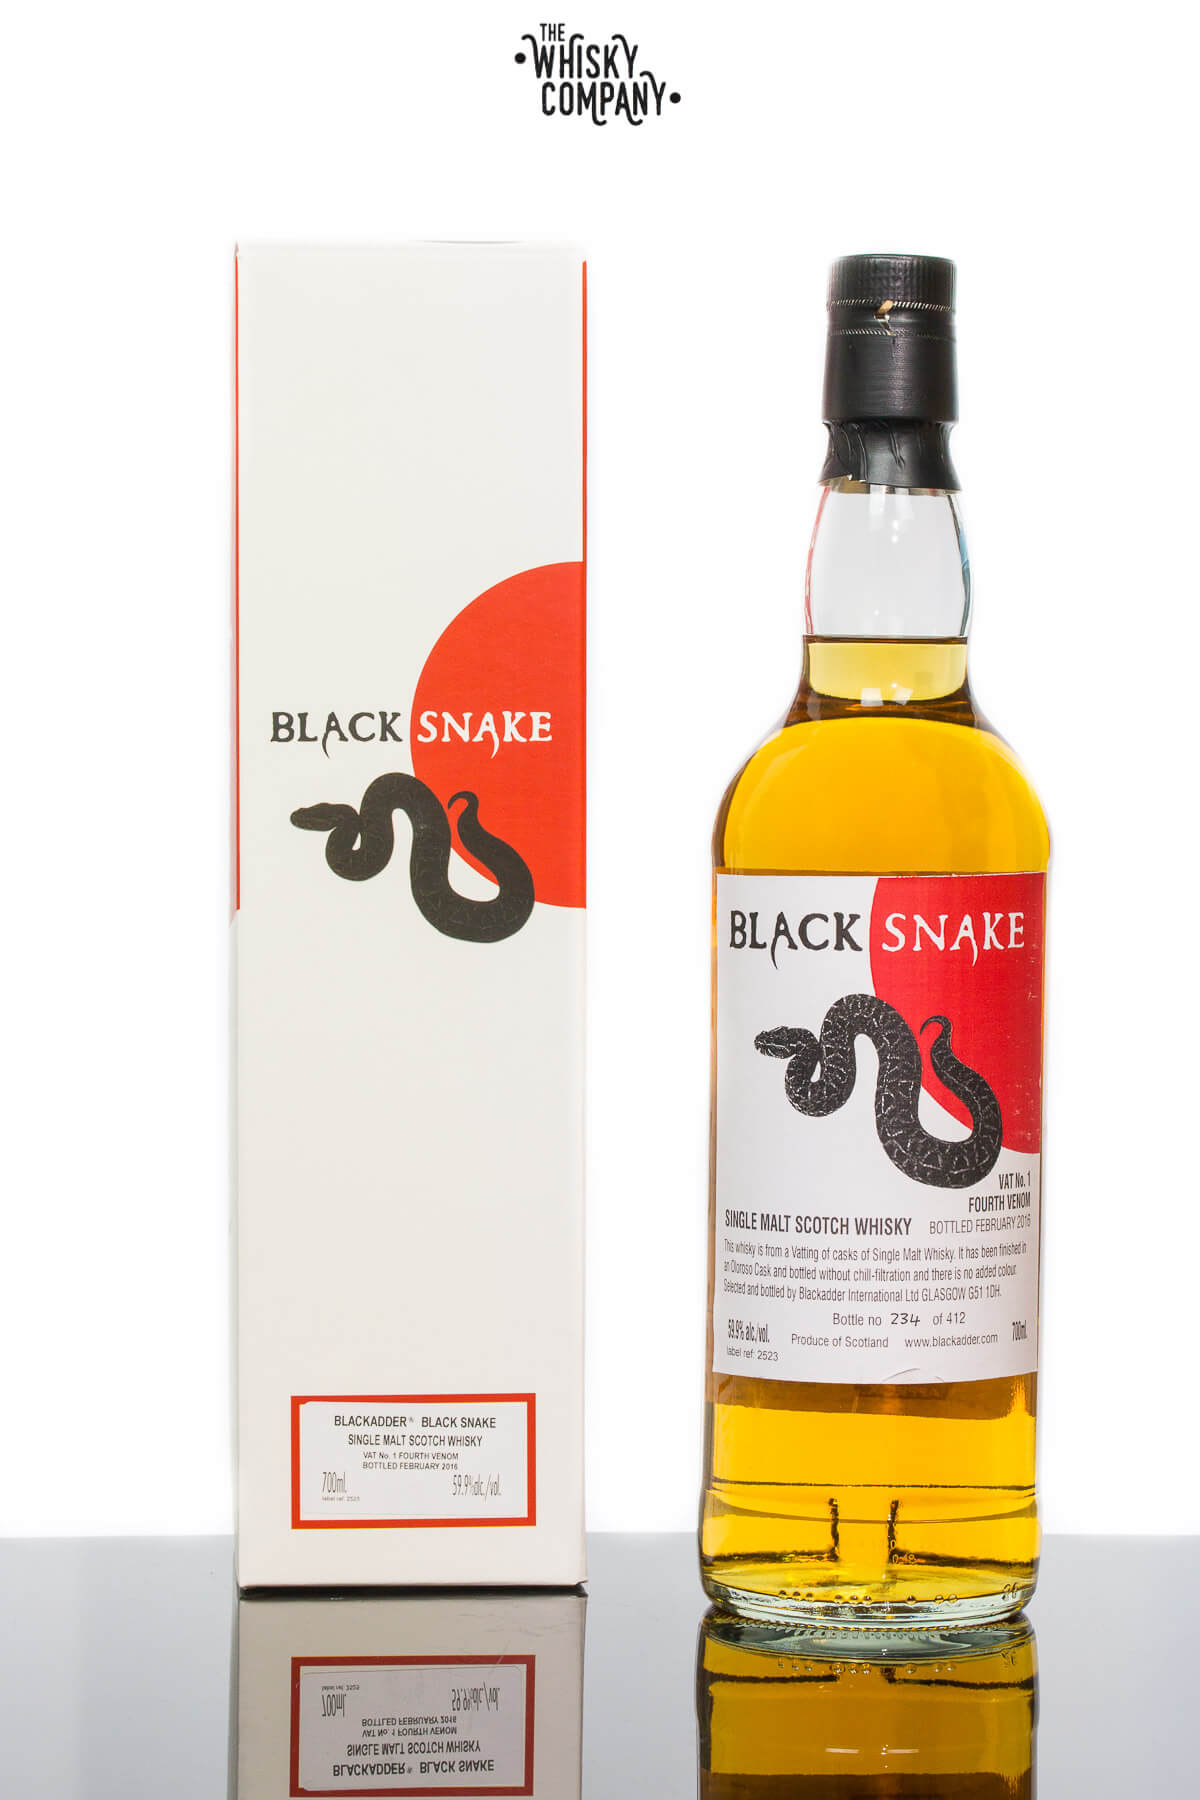 Blackadder Black Snake Vat No. 1 Fourth Venom Single Malt Scotch Whisky